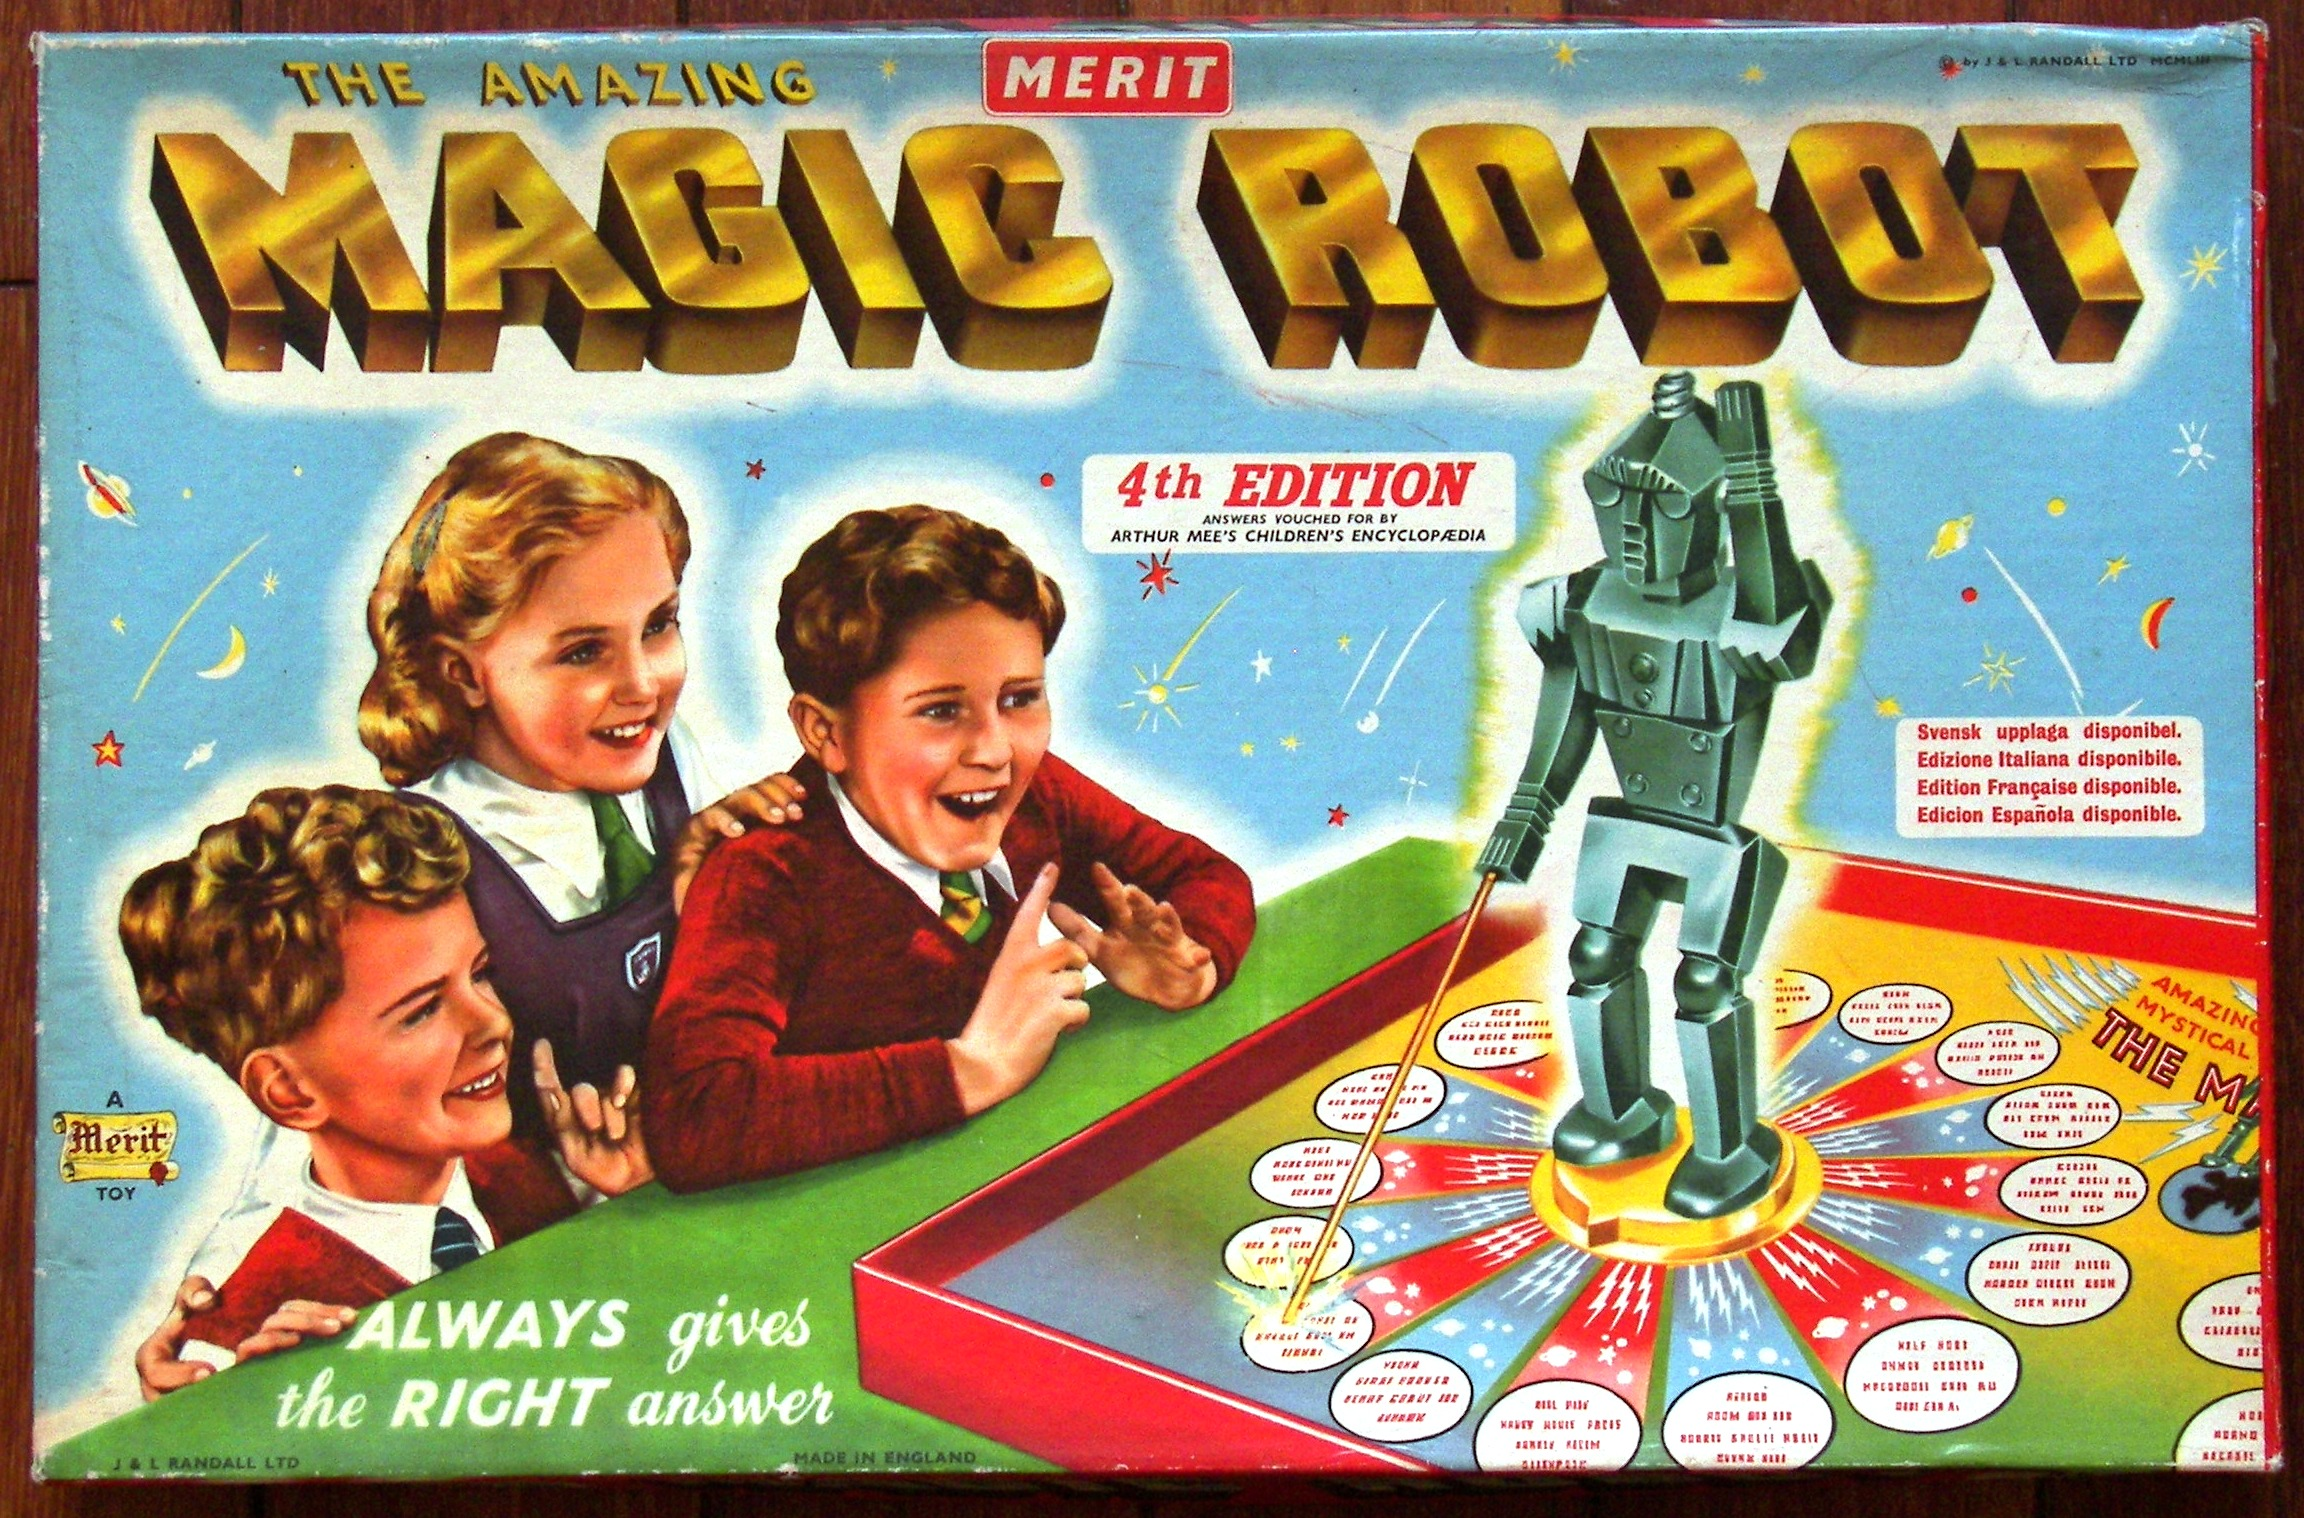 Magic Robot - It Always Gives the Right Answer